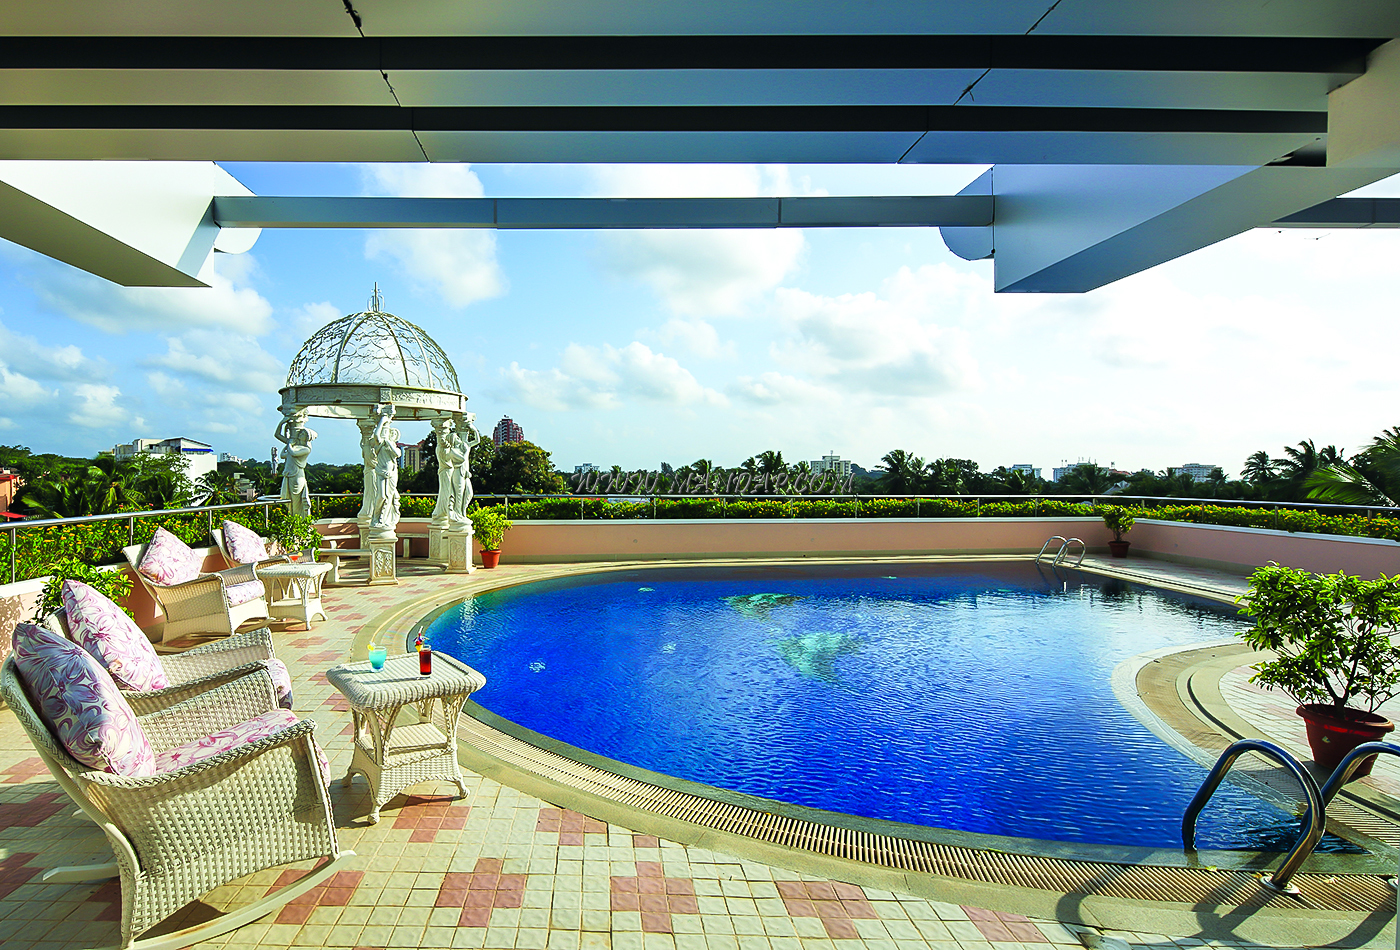 Find the availability of the Windsor Rajadhani Pool Side in Peroorkada, Trivandrum and avail special offers